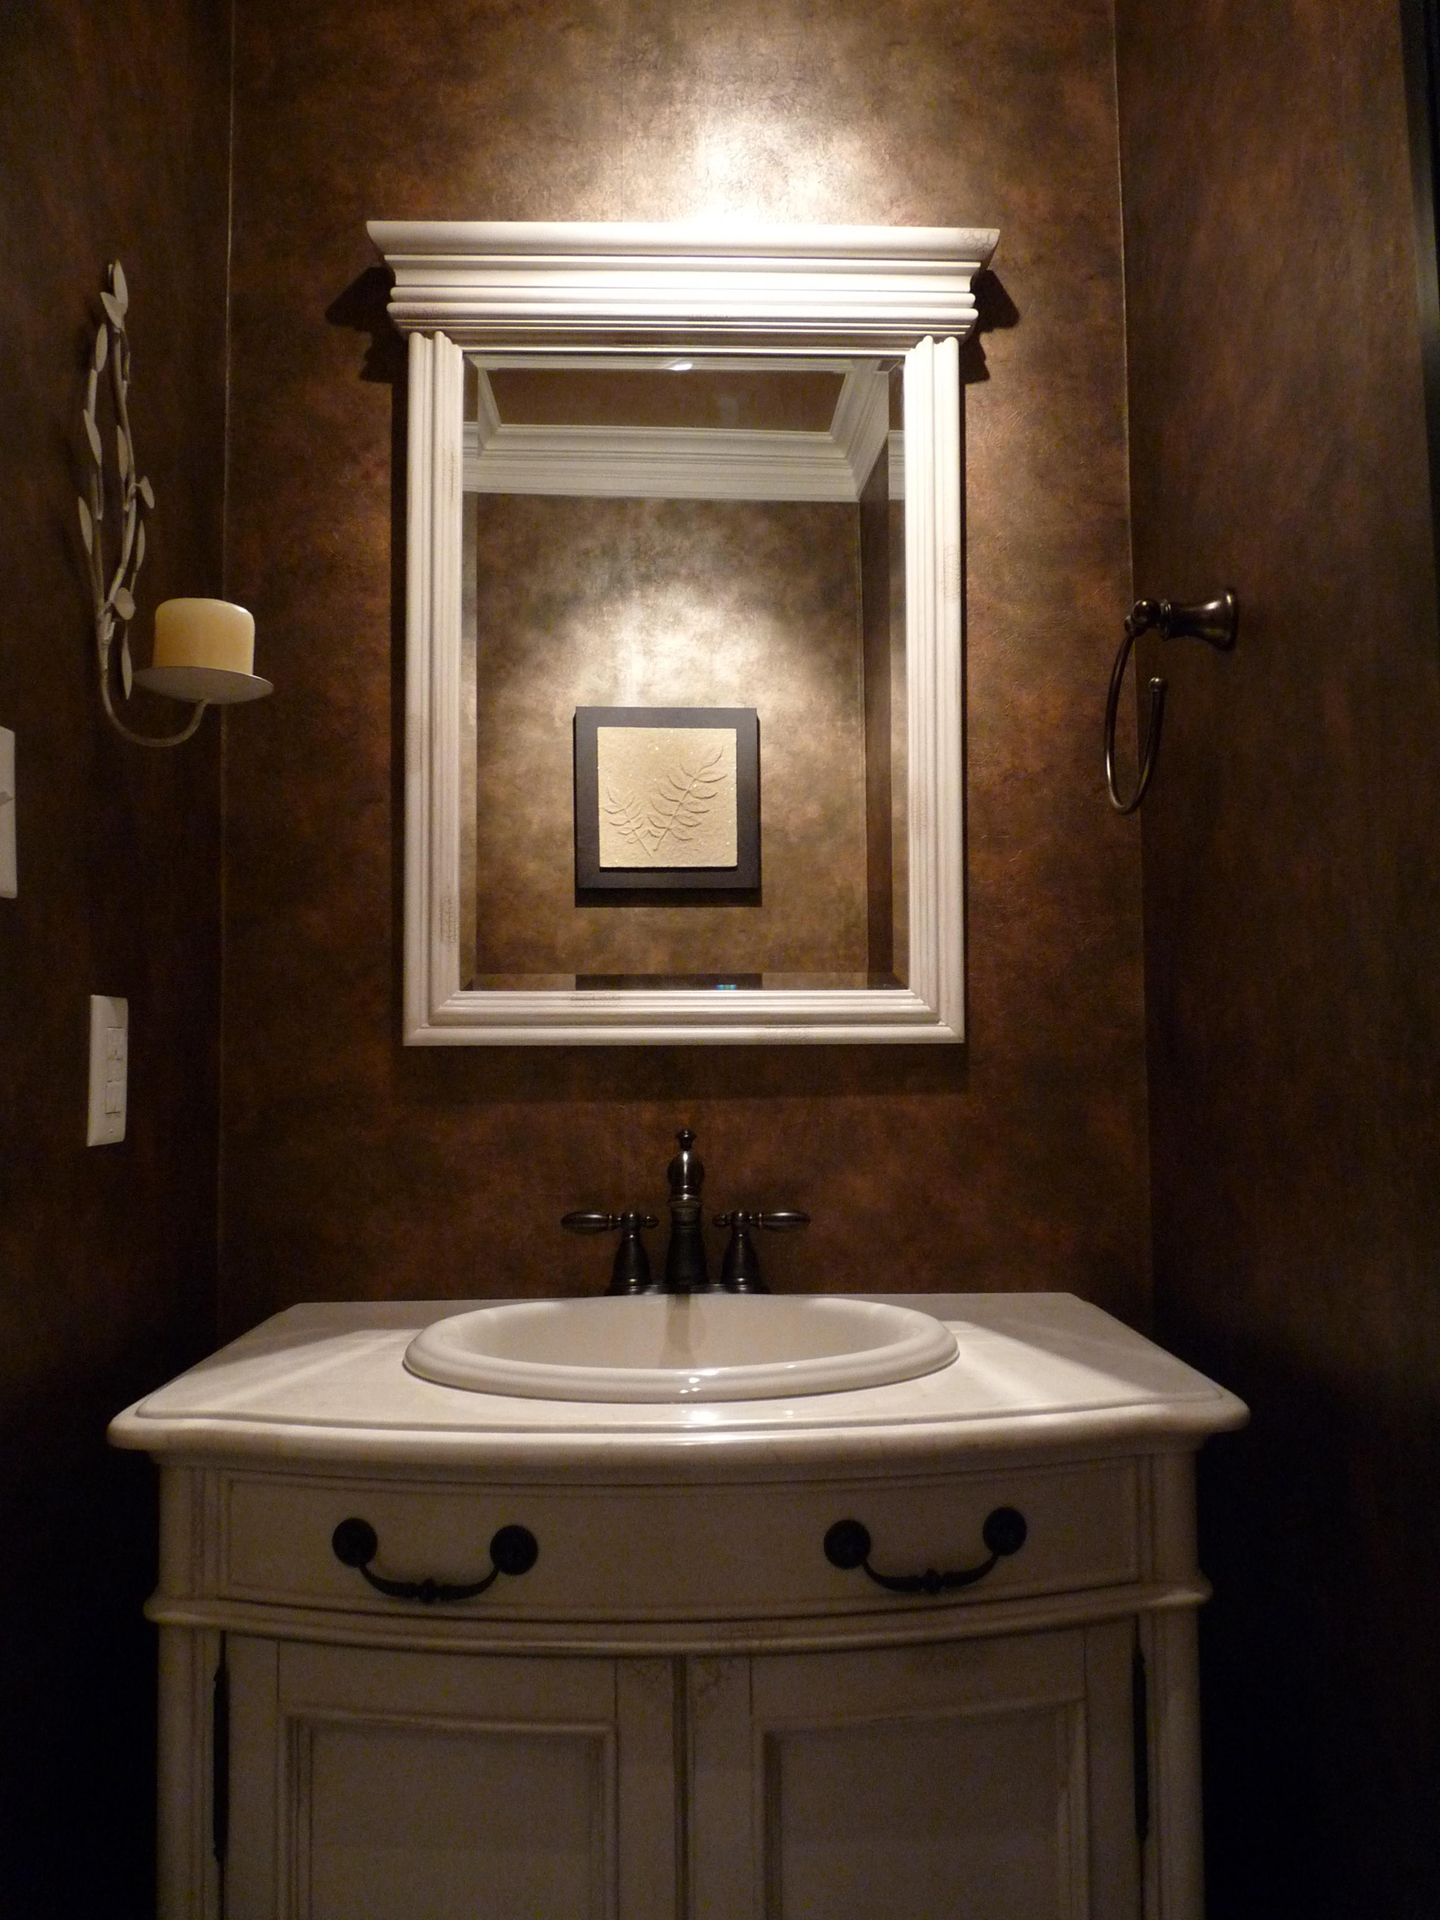 Bathrooms Impressions Painting 1440x1920